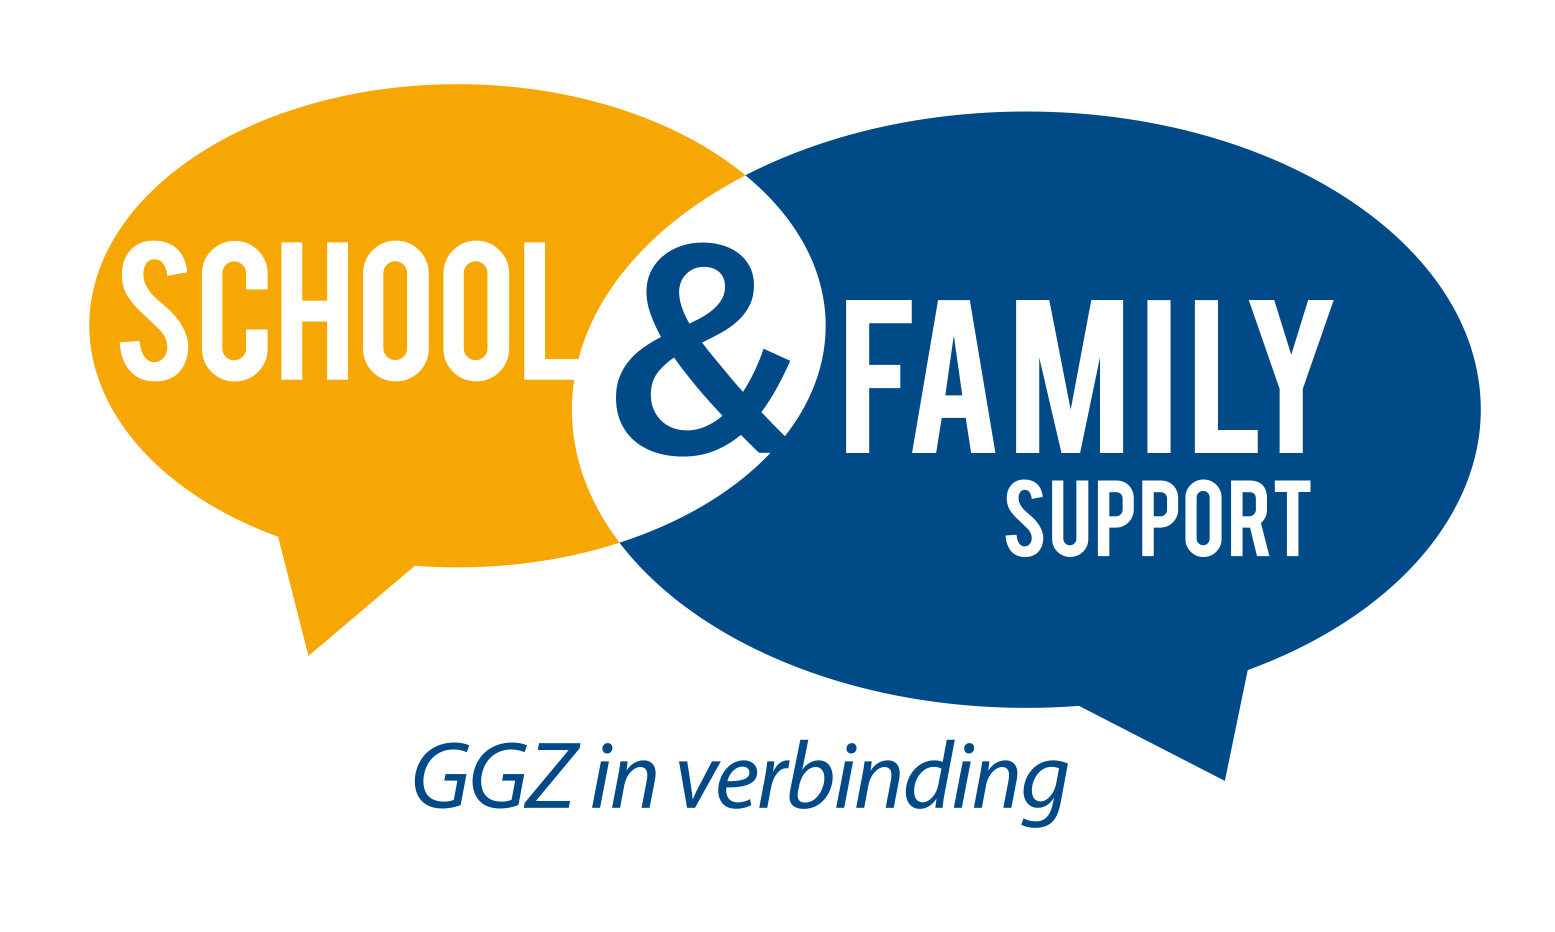 School & Family Support